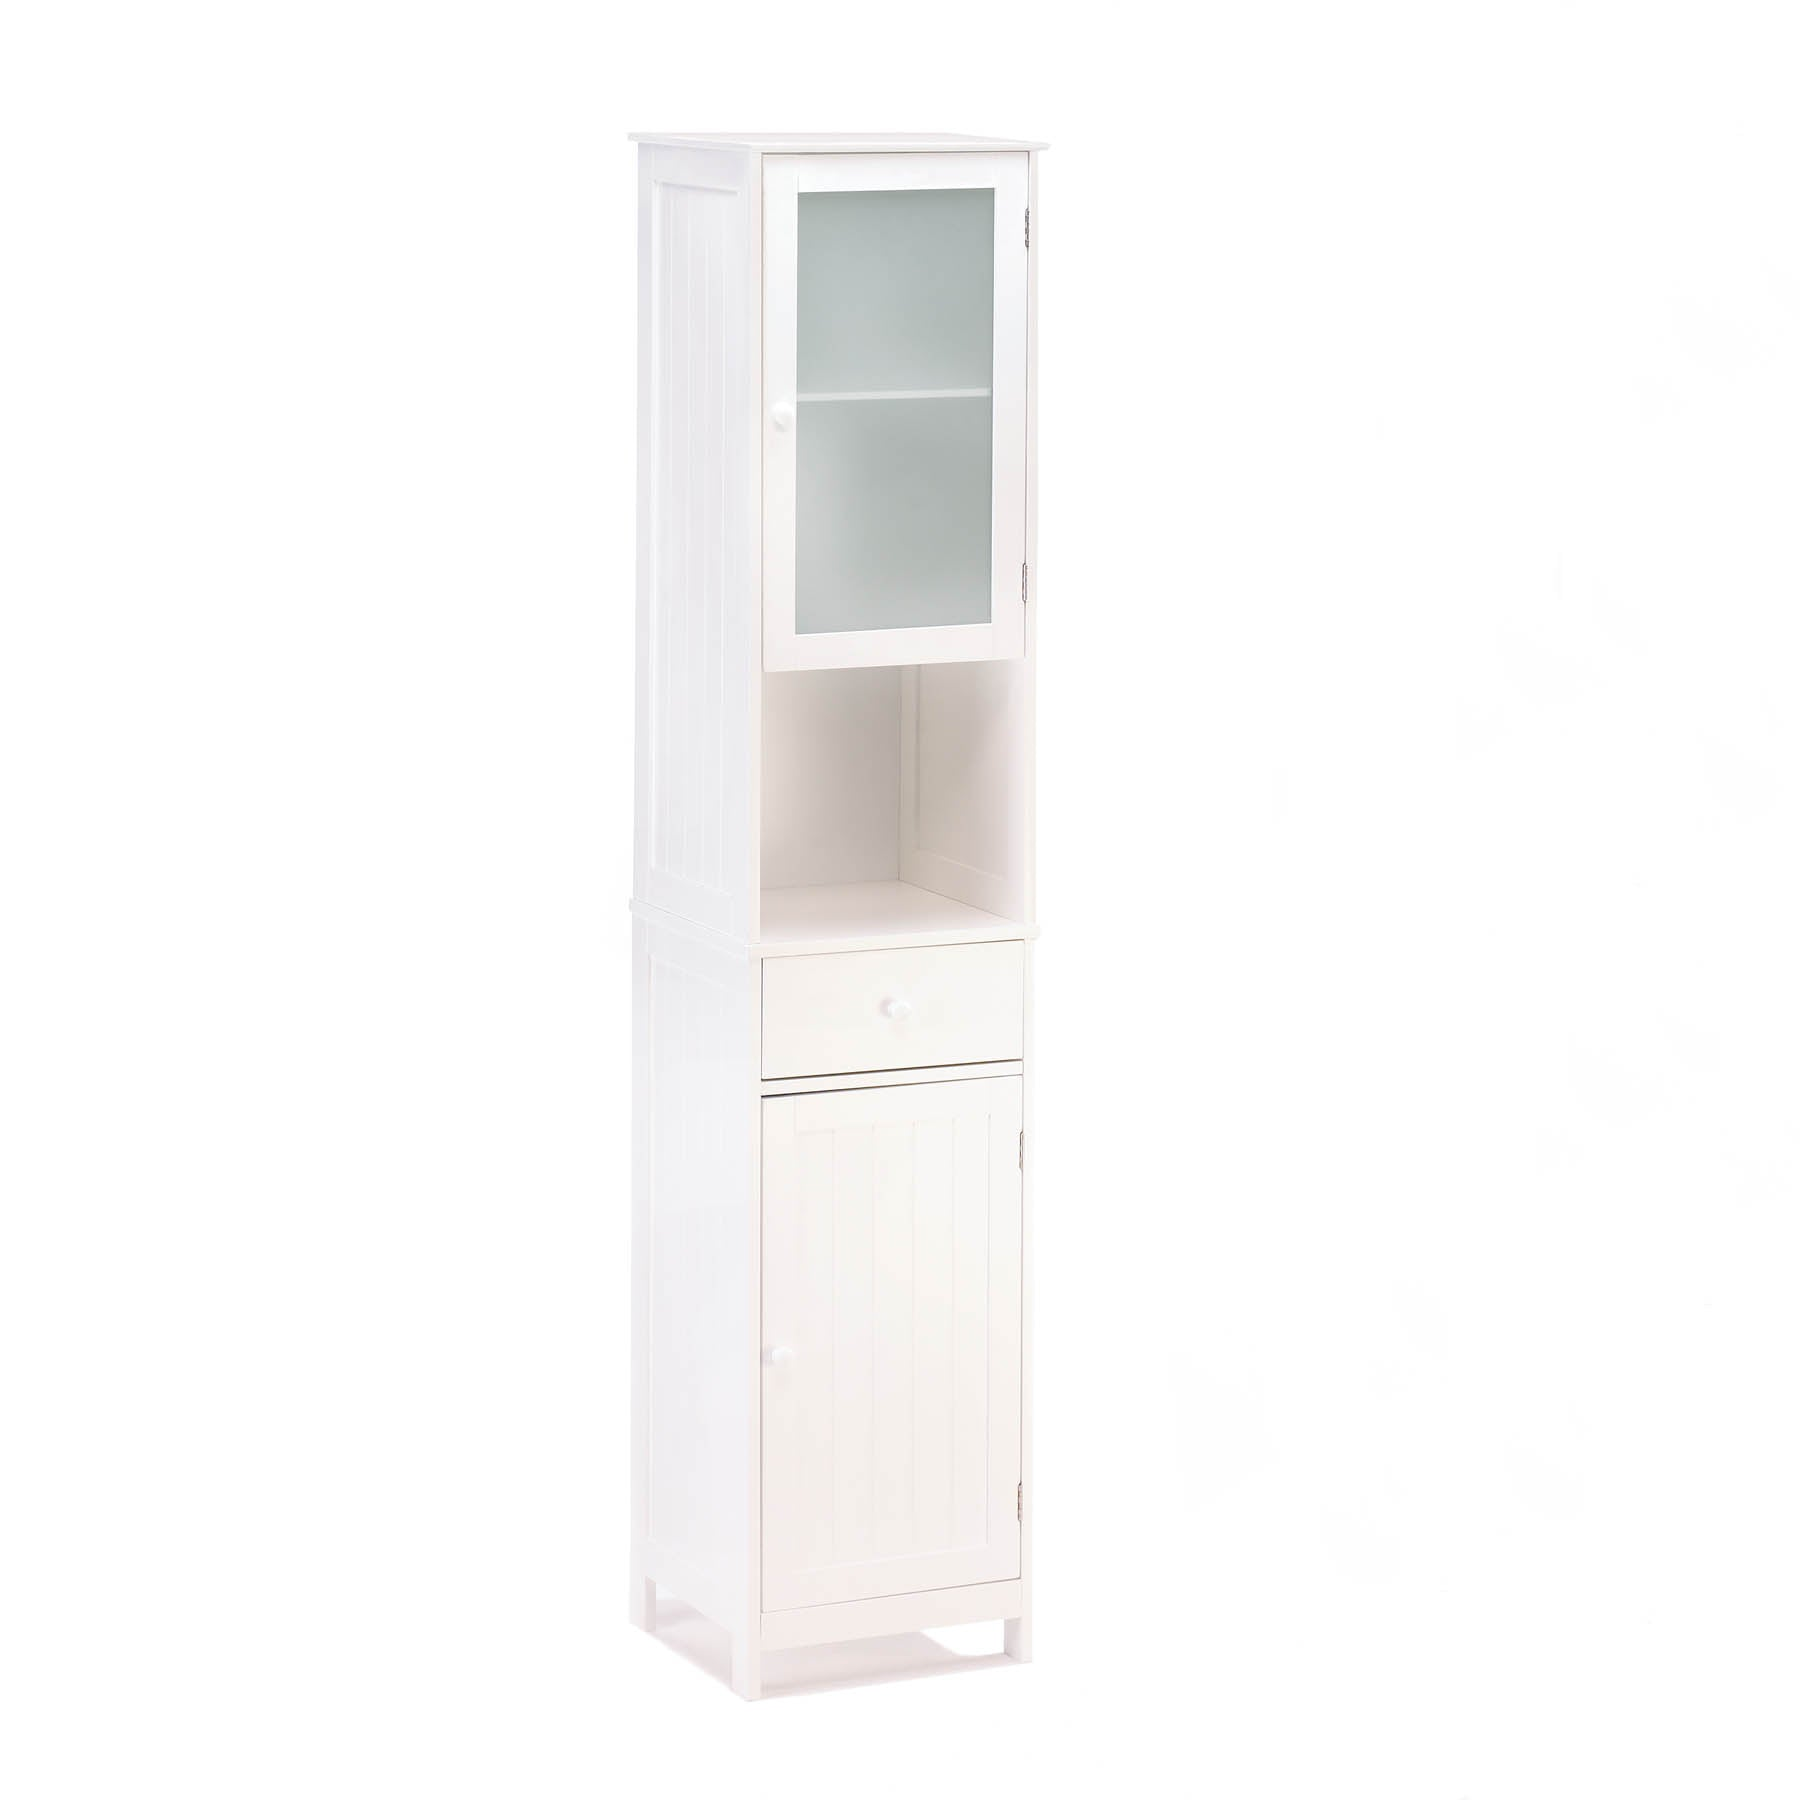 Accent Plus Lakeside Tall Storage Cabinet - 15128